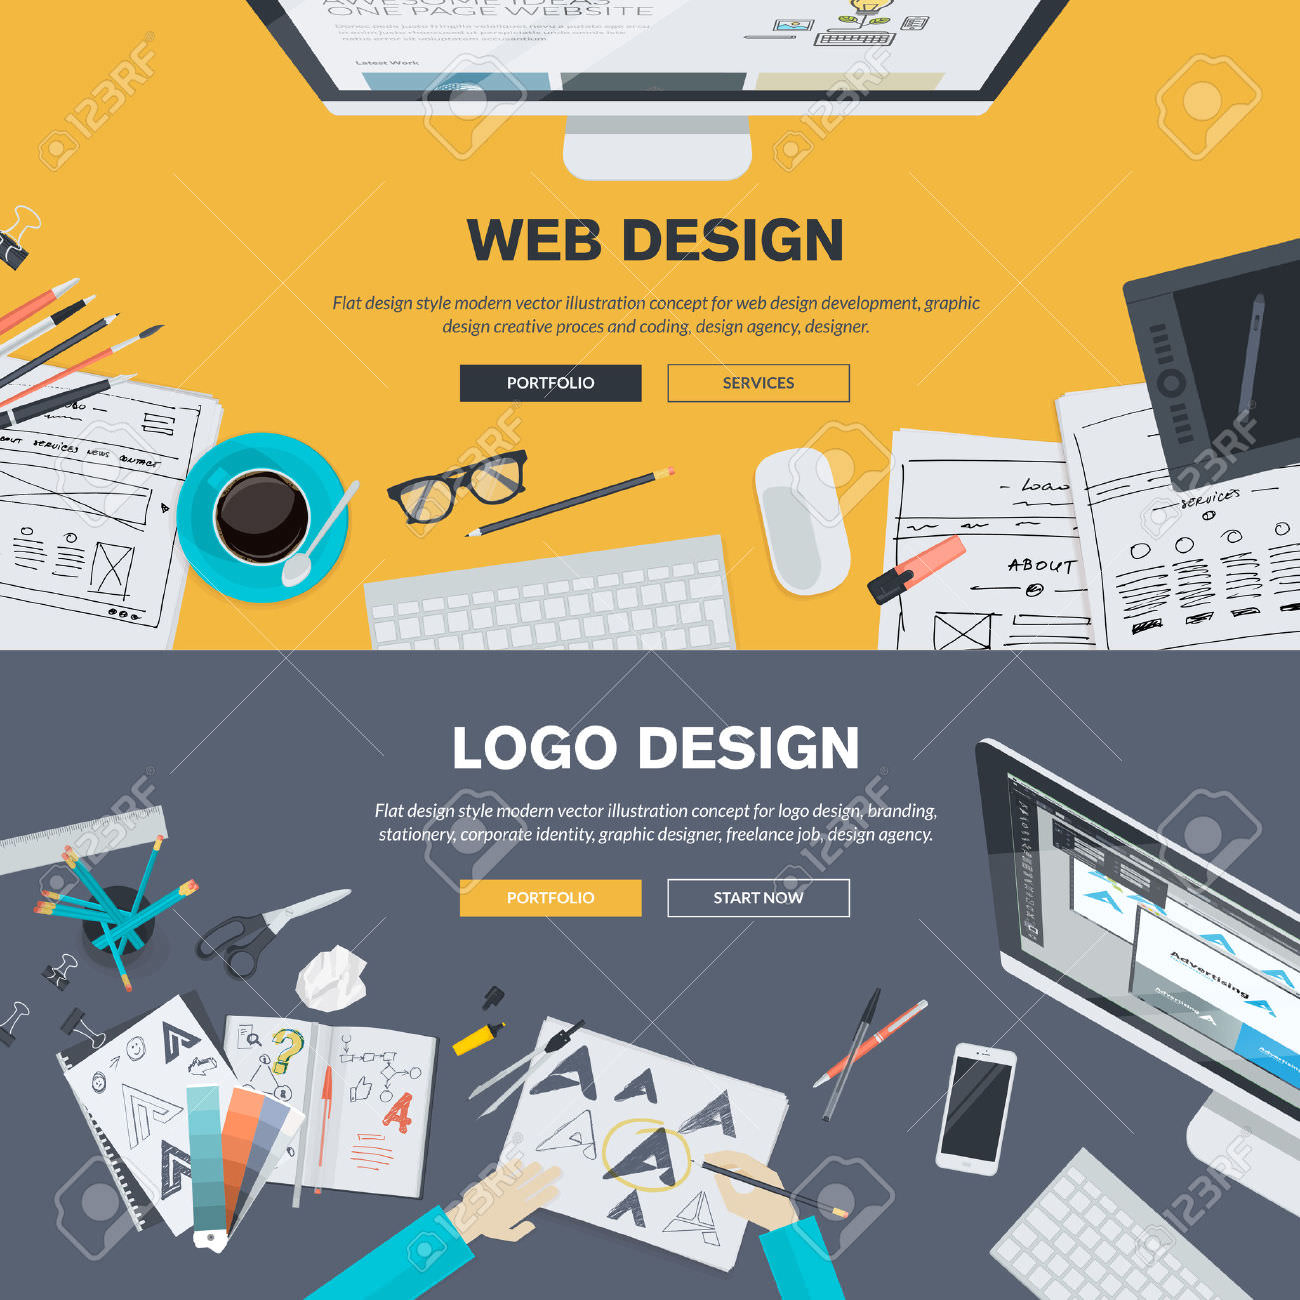 36892858 flat design illustration concepts for web design development design graphic design design agency con stock vector